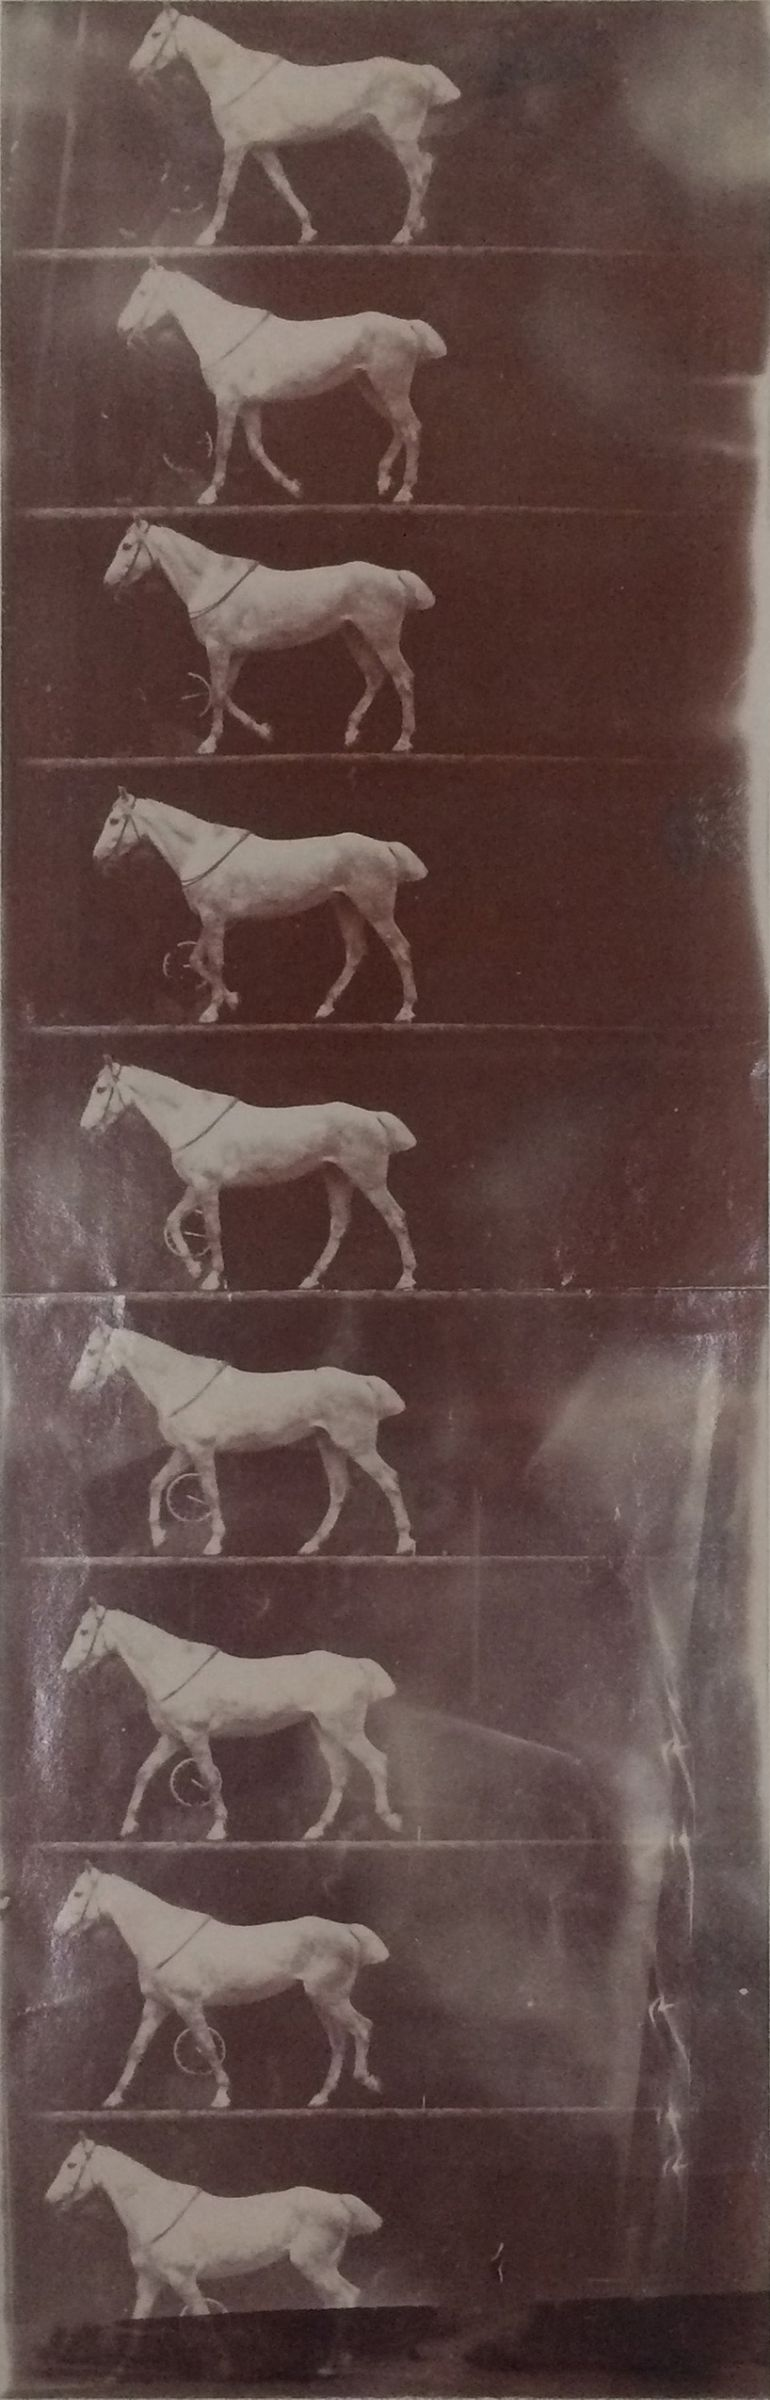 Etienne-Jules Marey, Untitled (horse [cob] walking, 1890–91. Gelatin silver print from film negative. Harvard Art Museums/Fogg Museum, Richard and Ronay Menschel Fund for the Acquisition of Photographs, 2012.198.